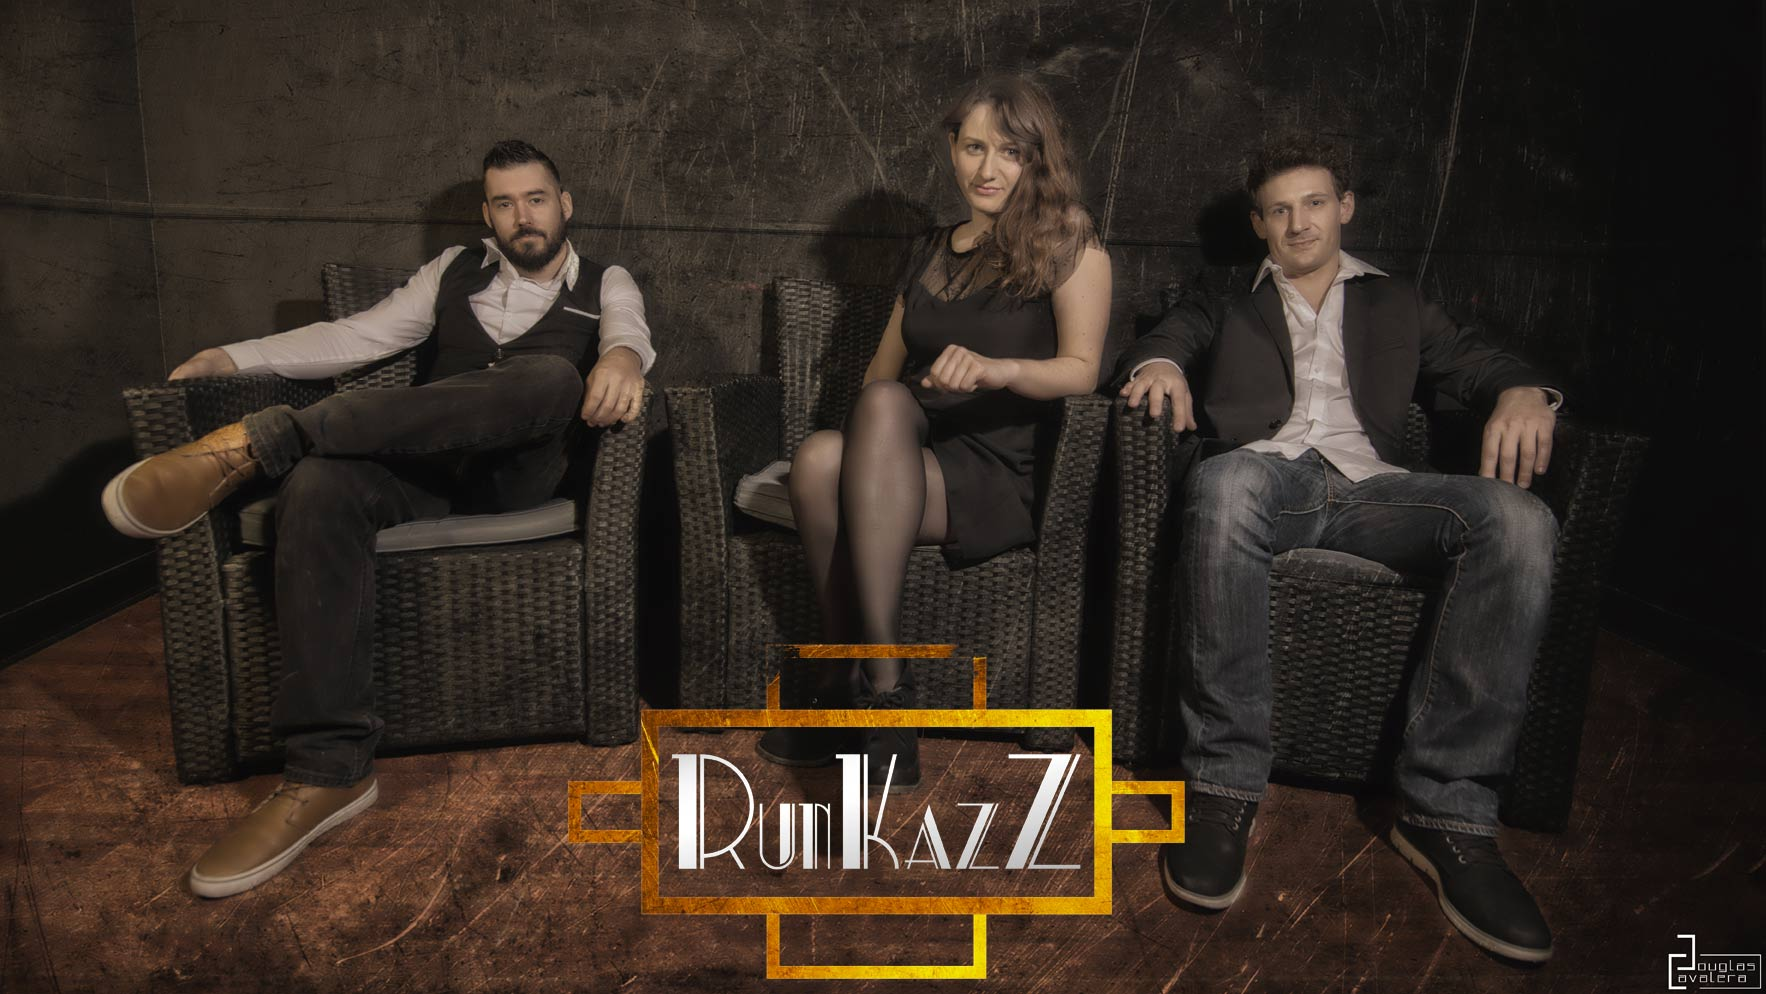 Runkazz : groupe Rock,fUNK,jAZZ